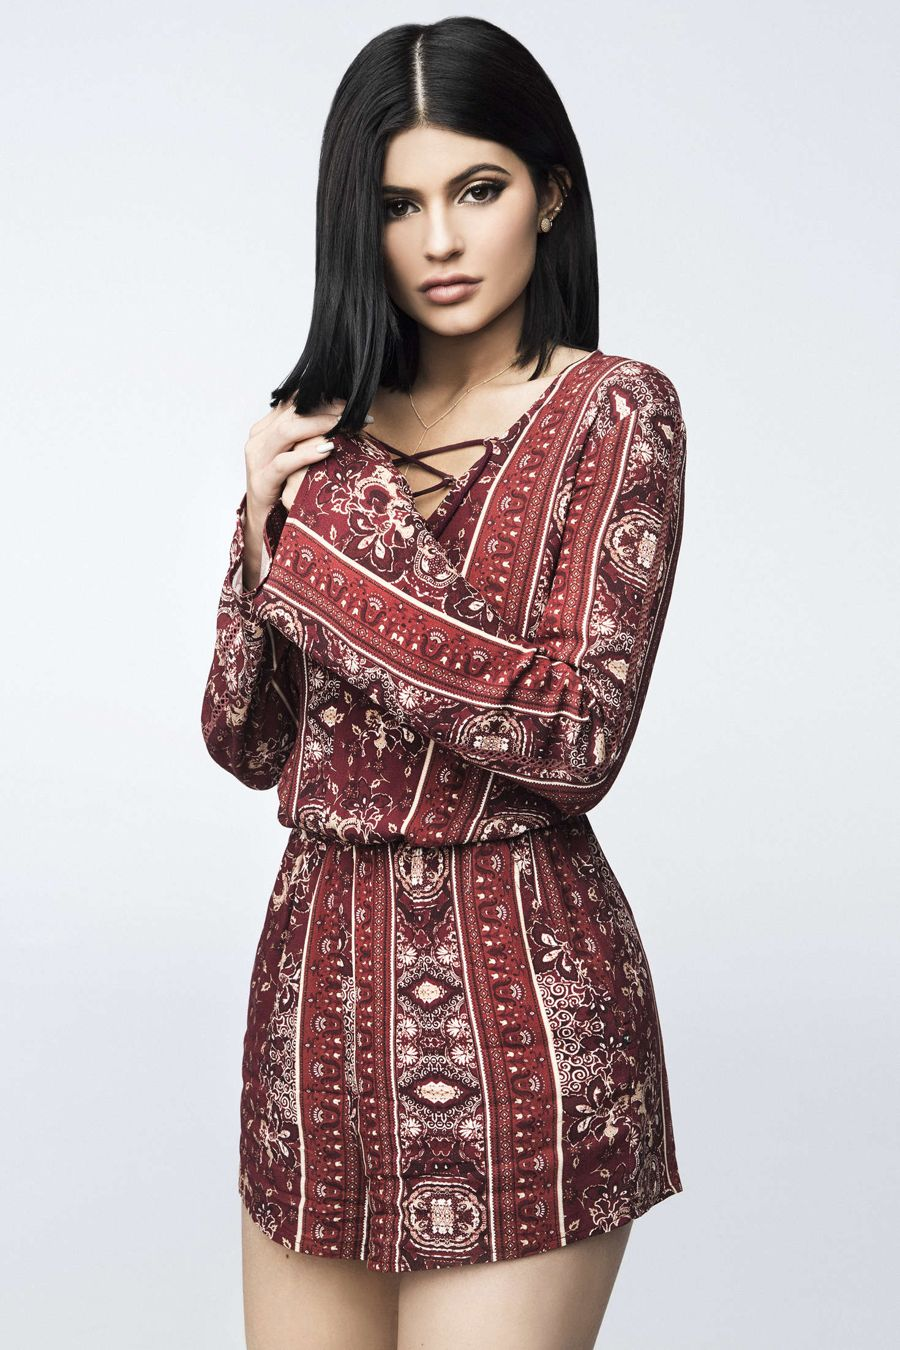 Kendall and Kylie Jenner - Pacsun 2016 collection